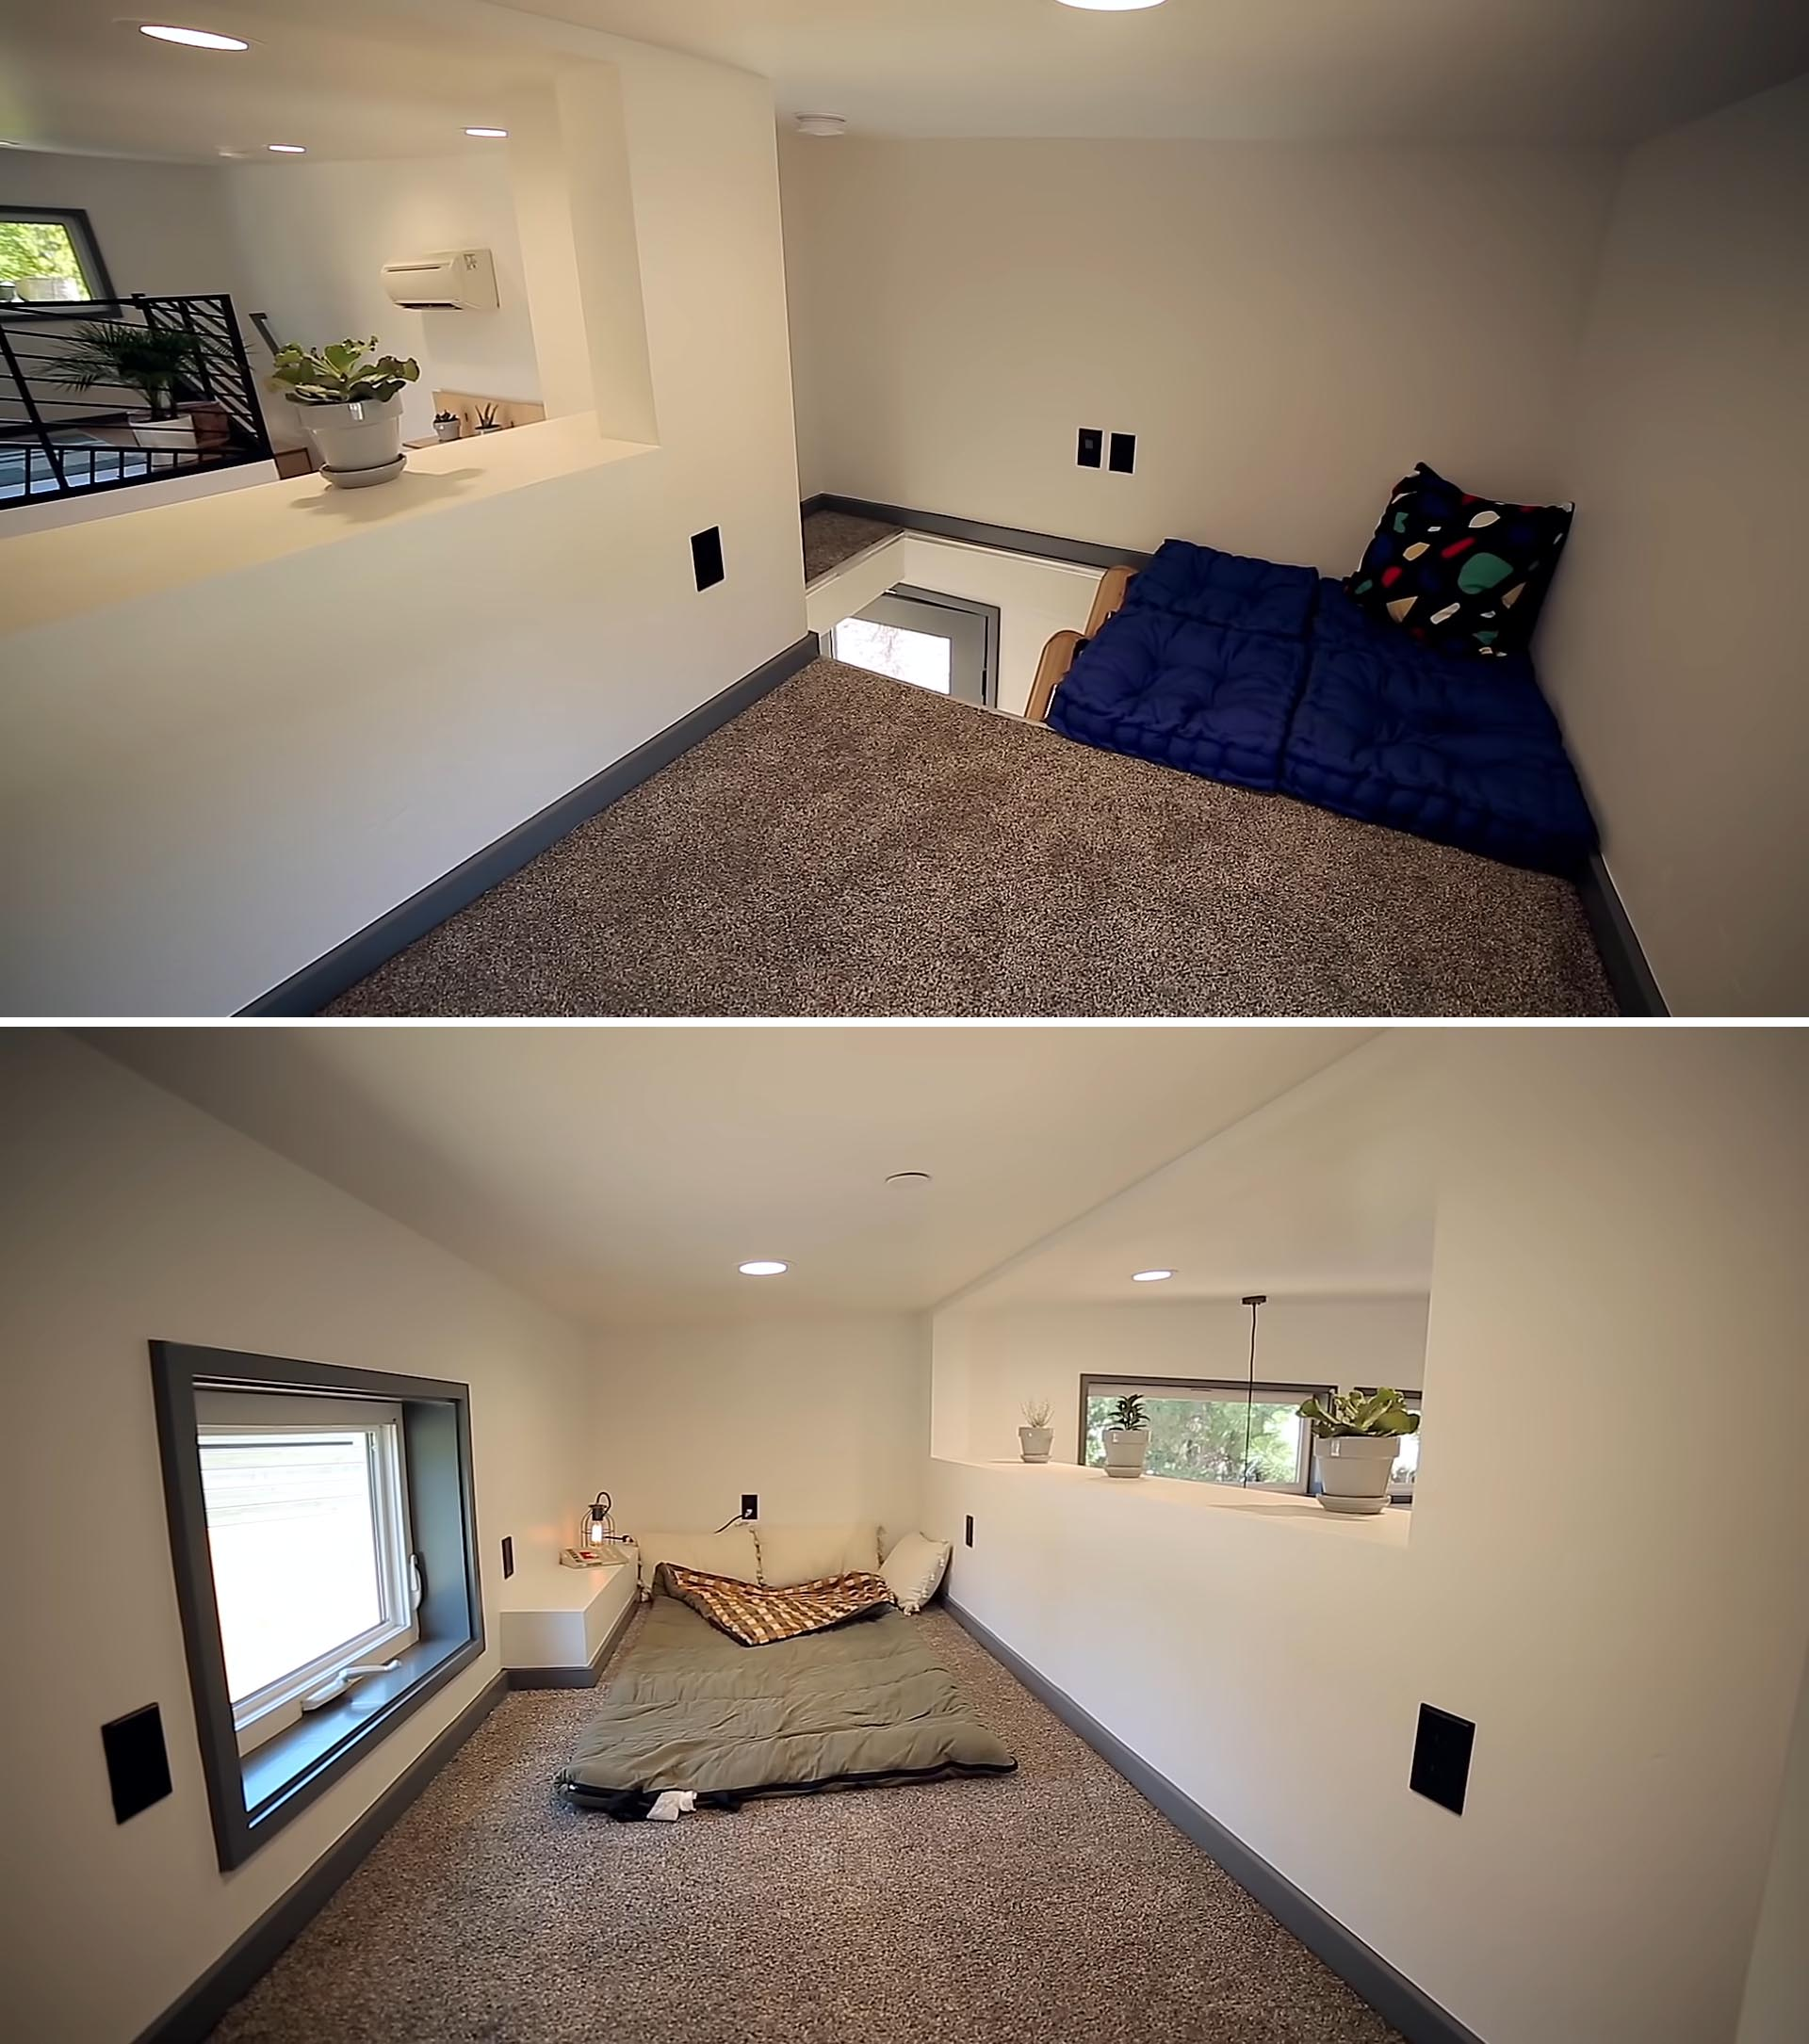 A lofted sleeping area in a tiny house that can be used as a home office or reading nook.